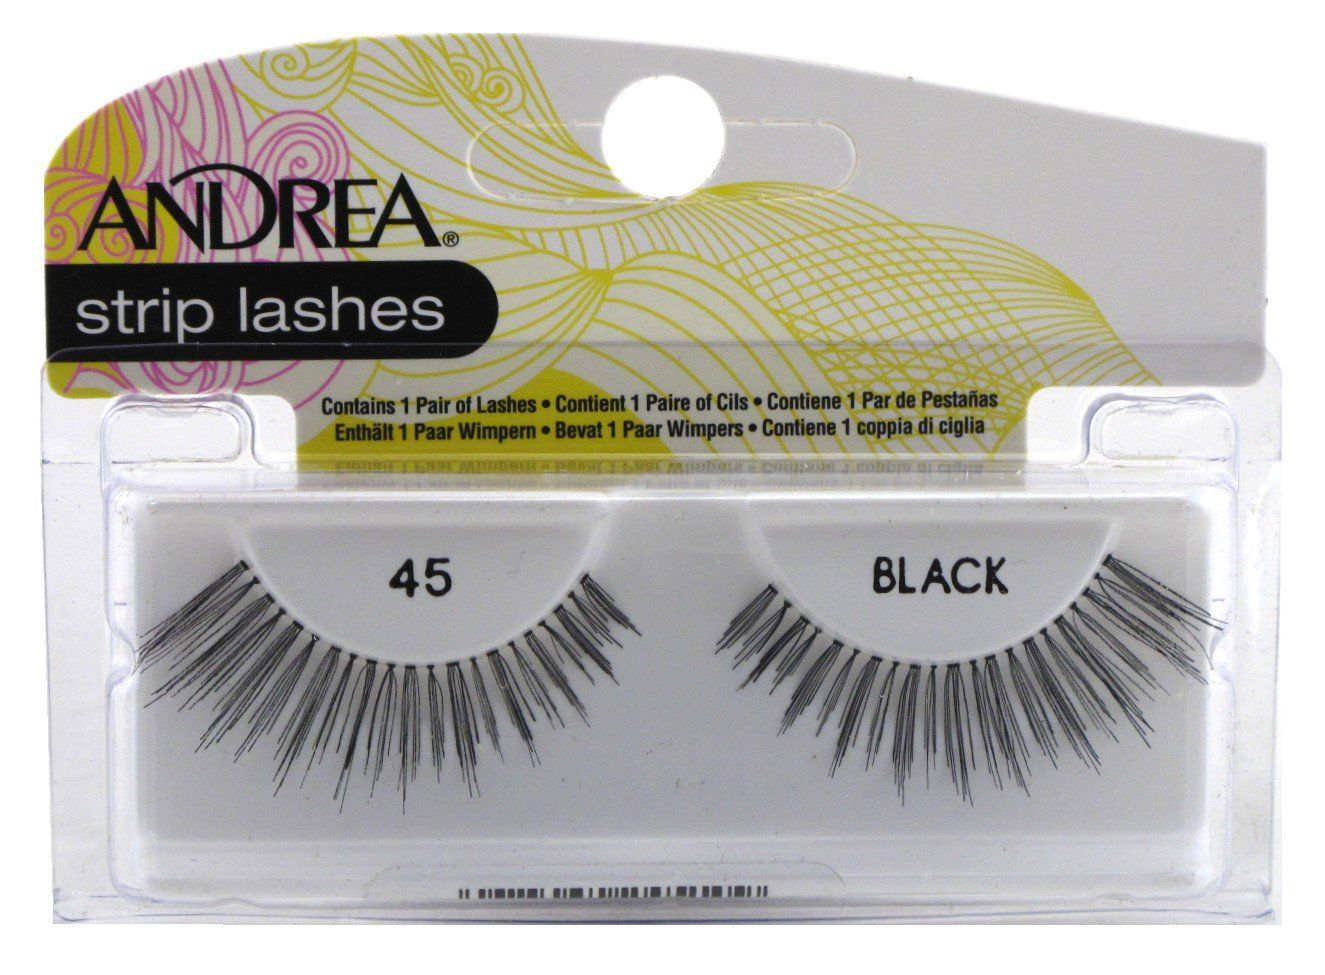 707c9a68ce5 Andrea Lashes Strip Style 45 Black (3 Pack). 3 Pieces -. Lush lashes ...